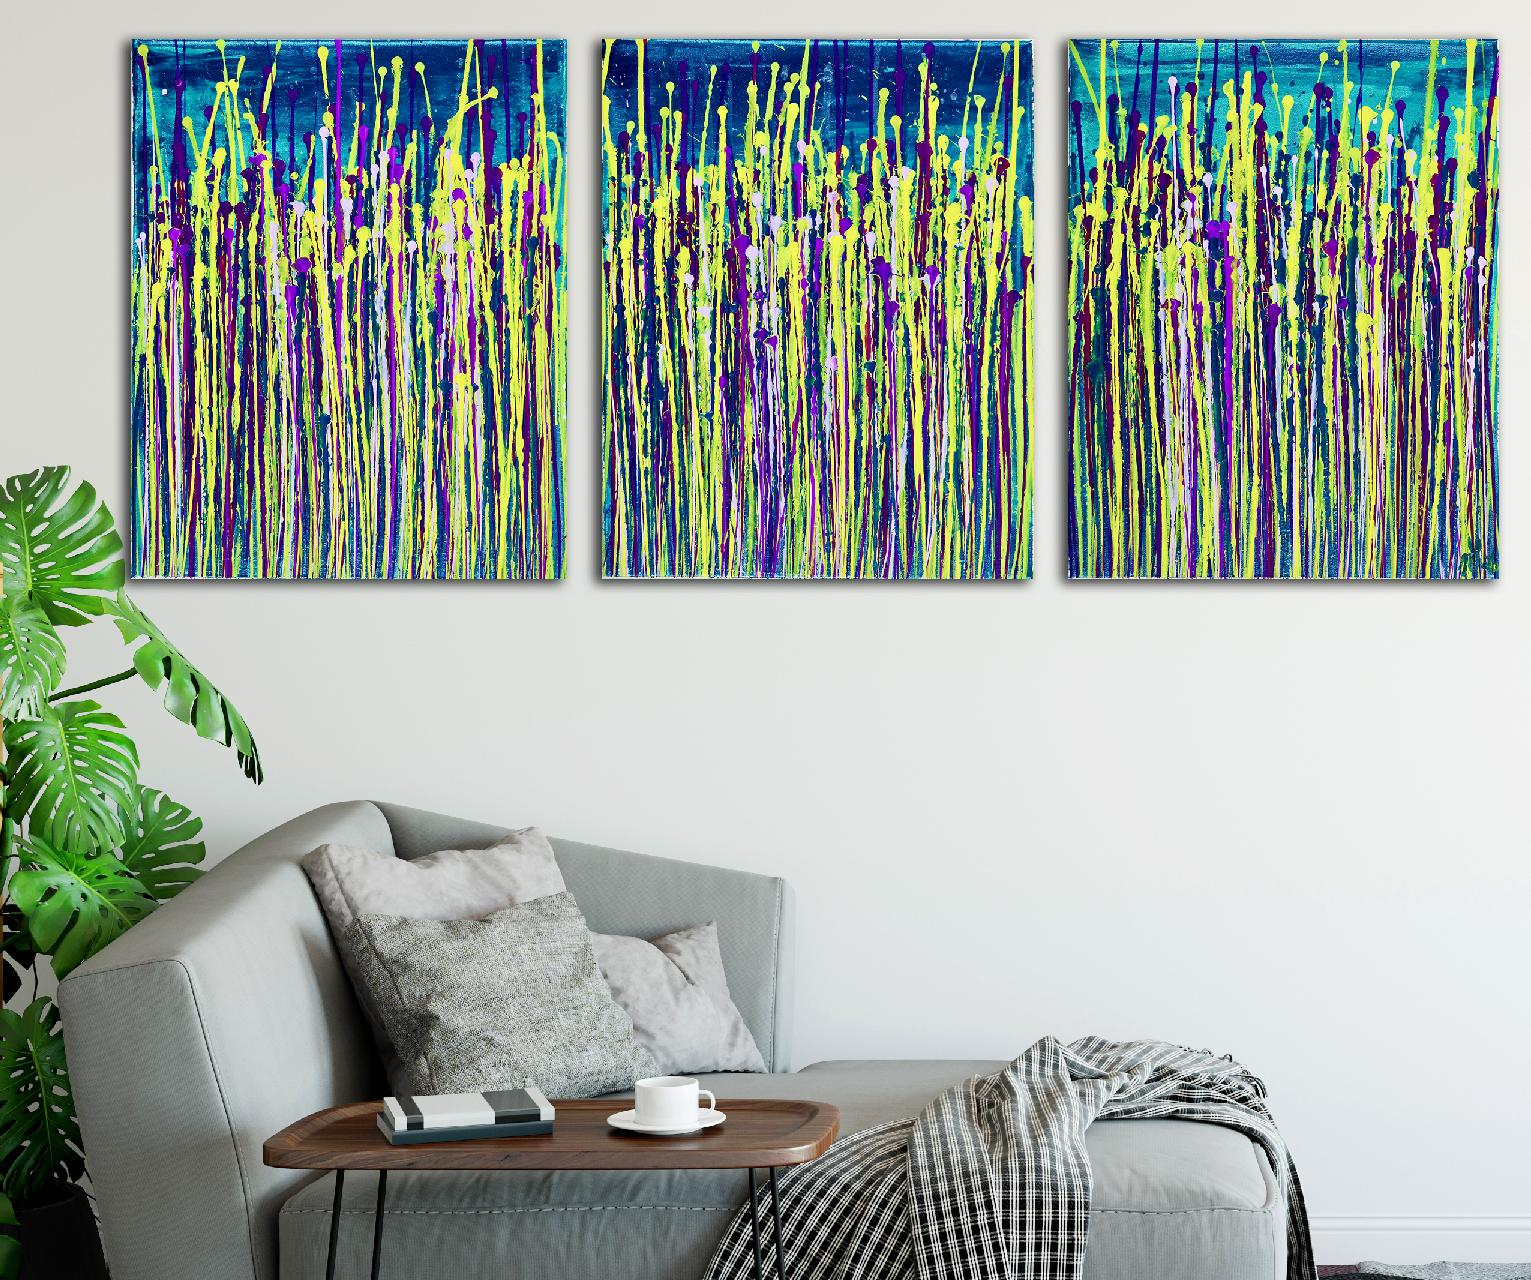 Daydream panorama 6 (Teal retreat) (2020) abstract painting by Nestor Toro